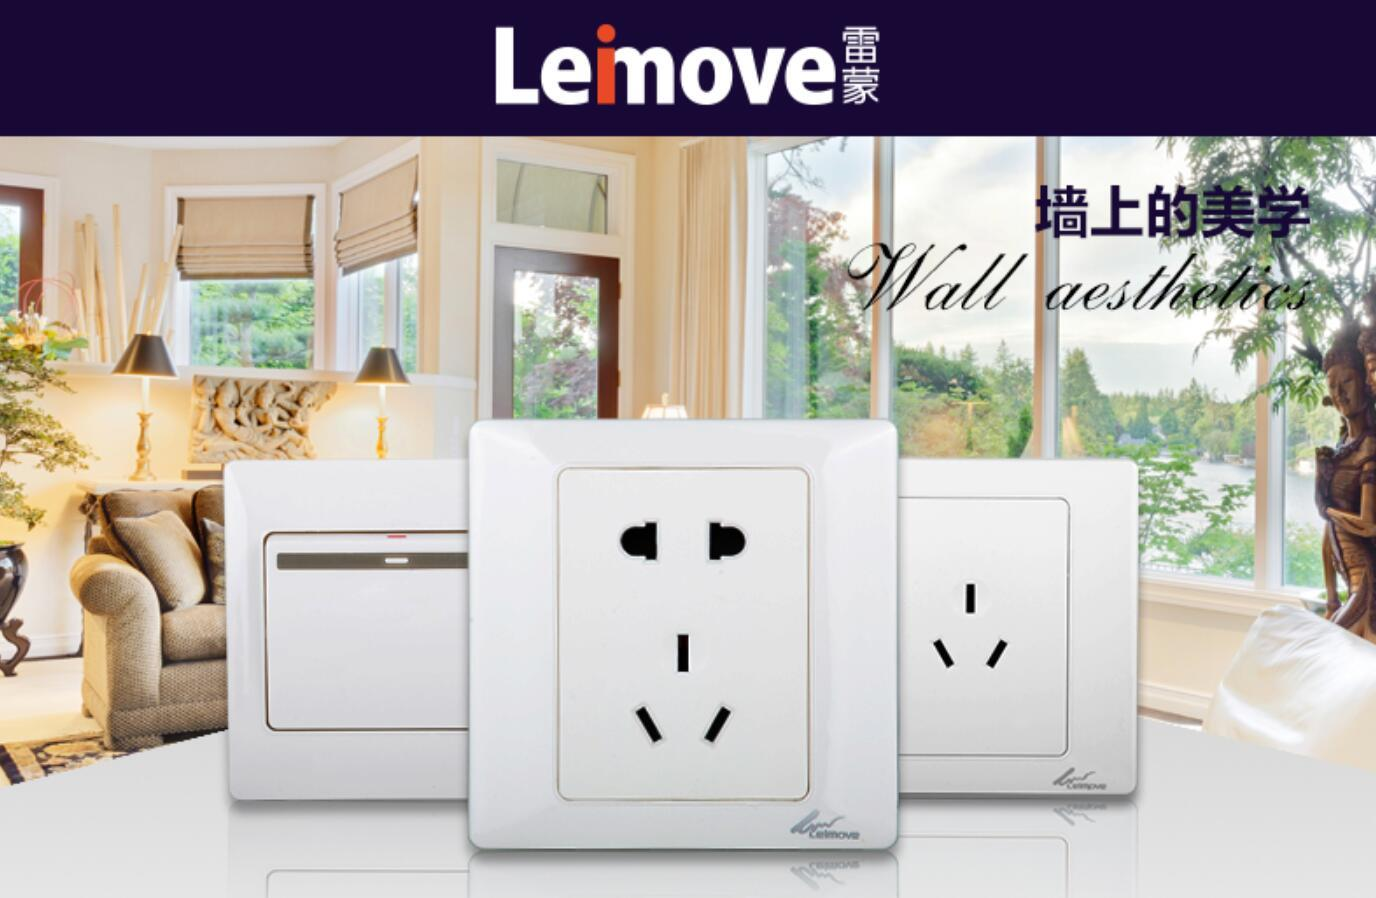 gang wall general electrical on off switch Leimove Brand company